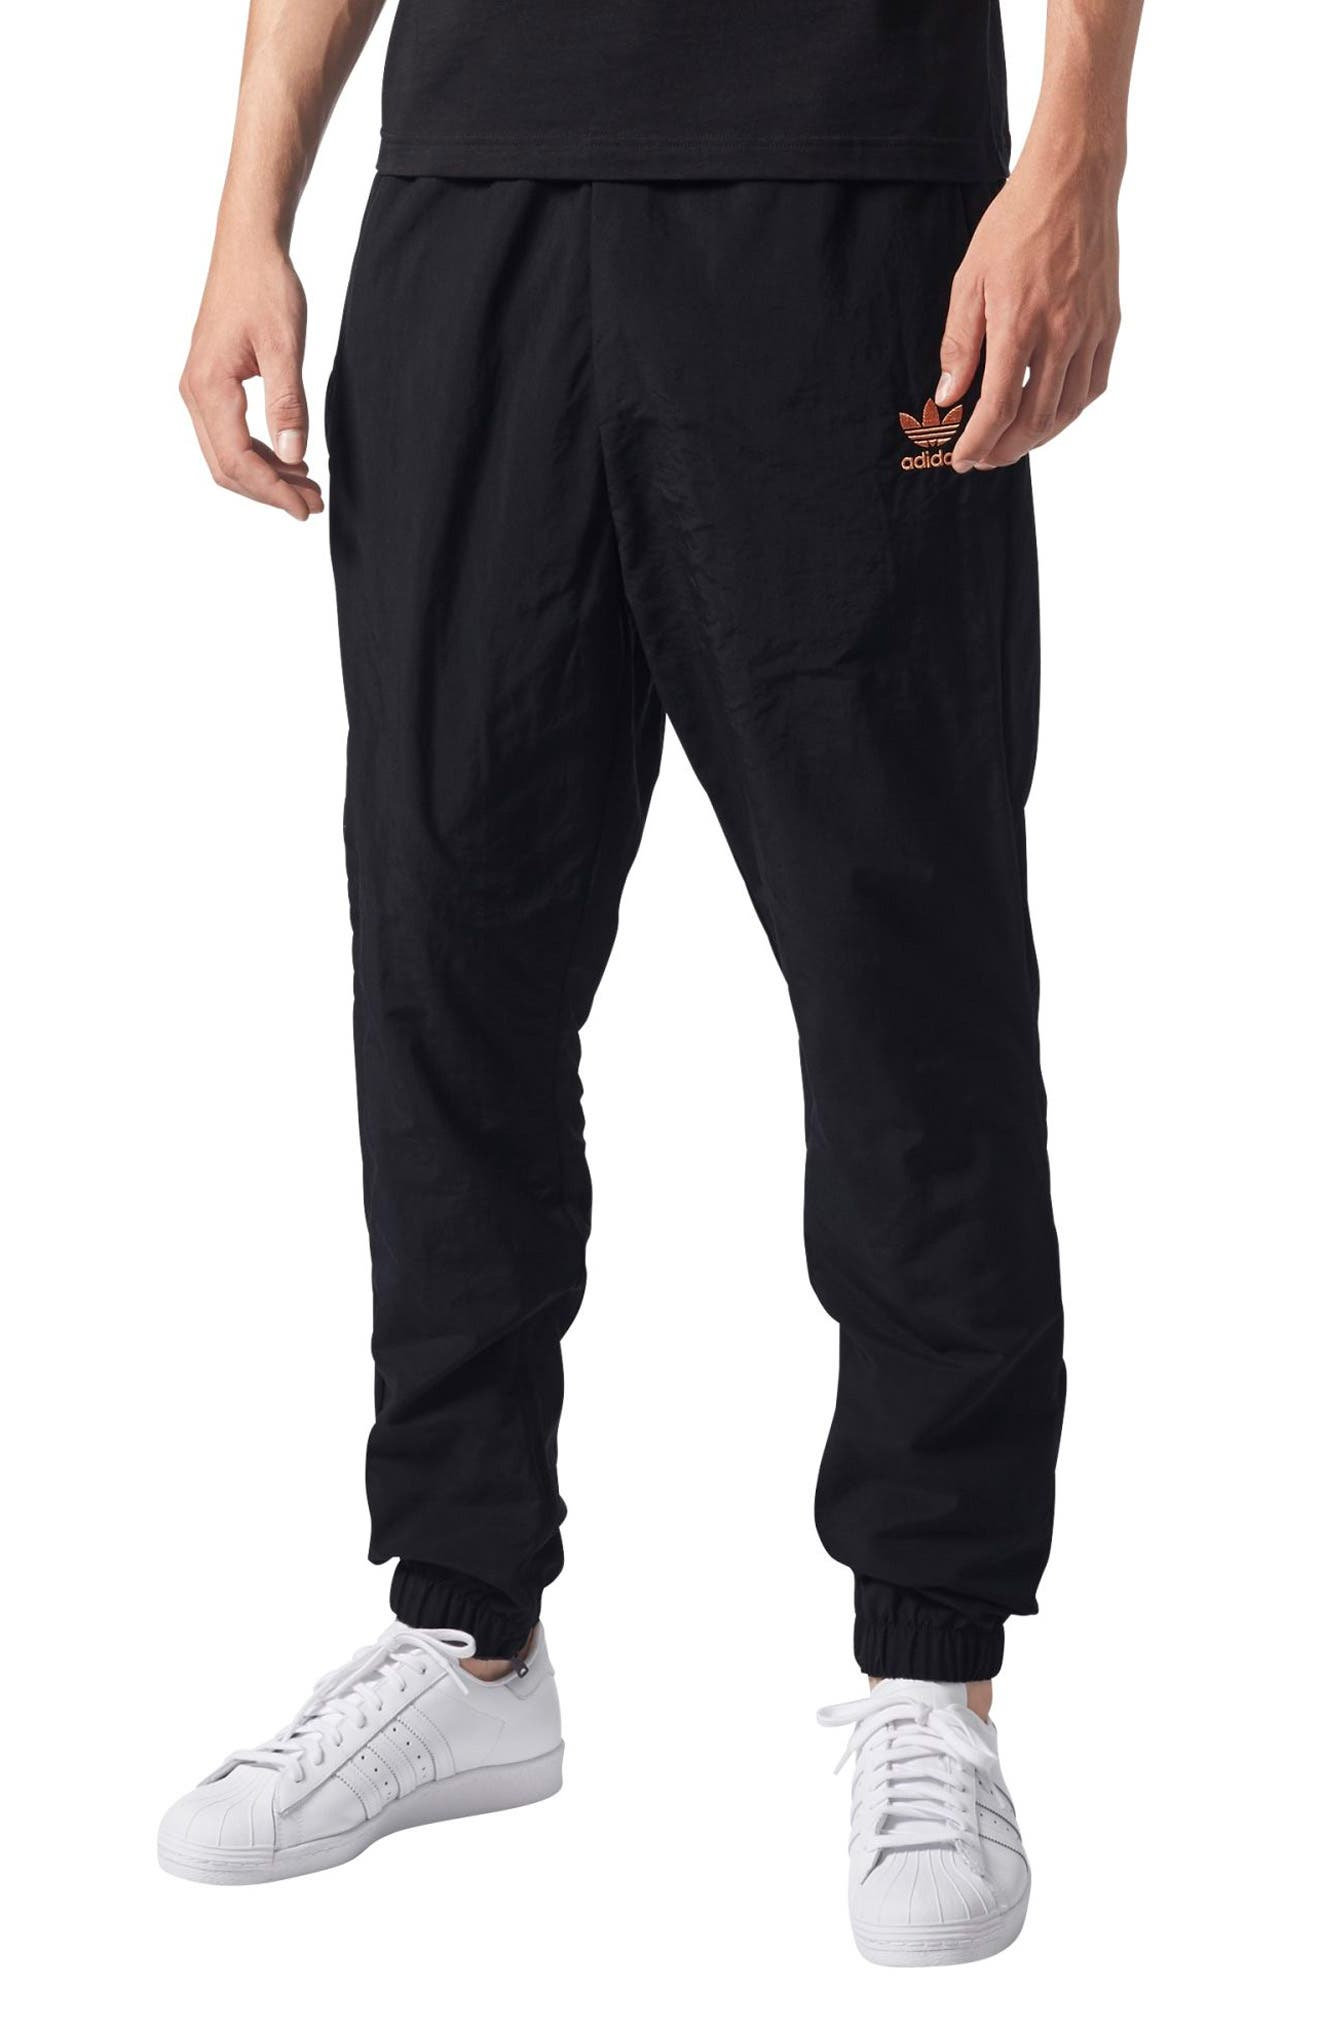 Pharrell Williams Hu Hiking Track Pants,                             Main thumbnail 1, color,                             001